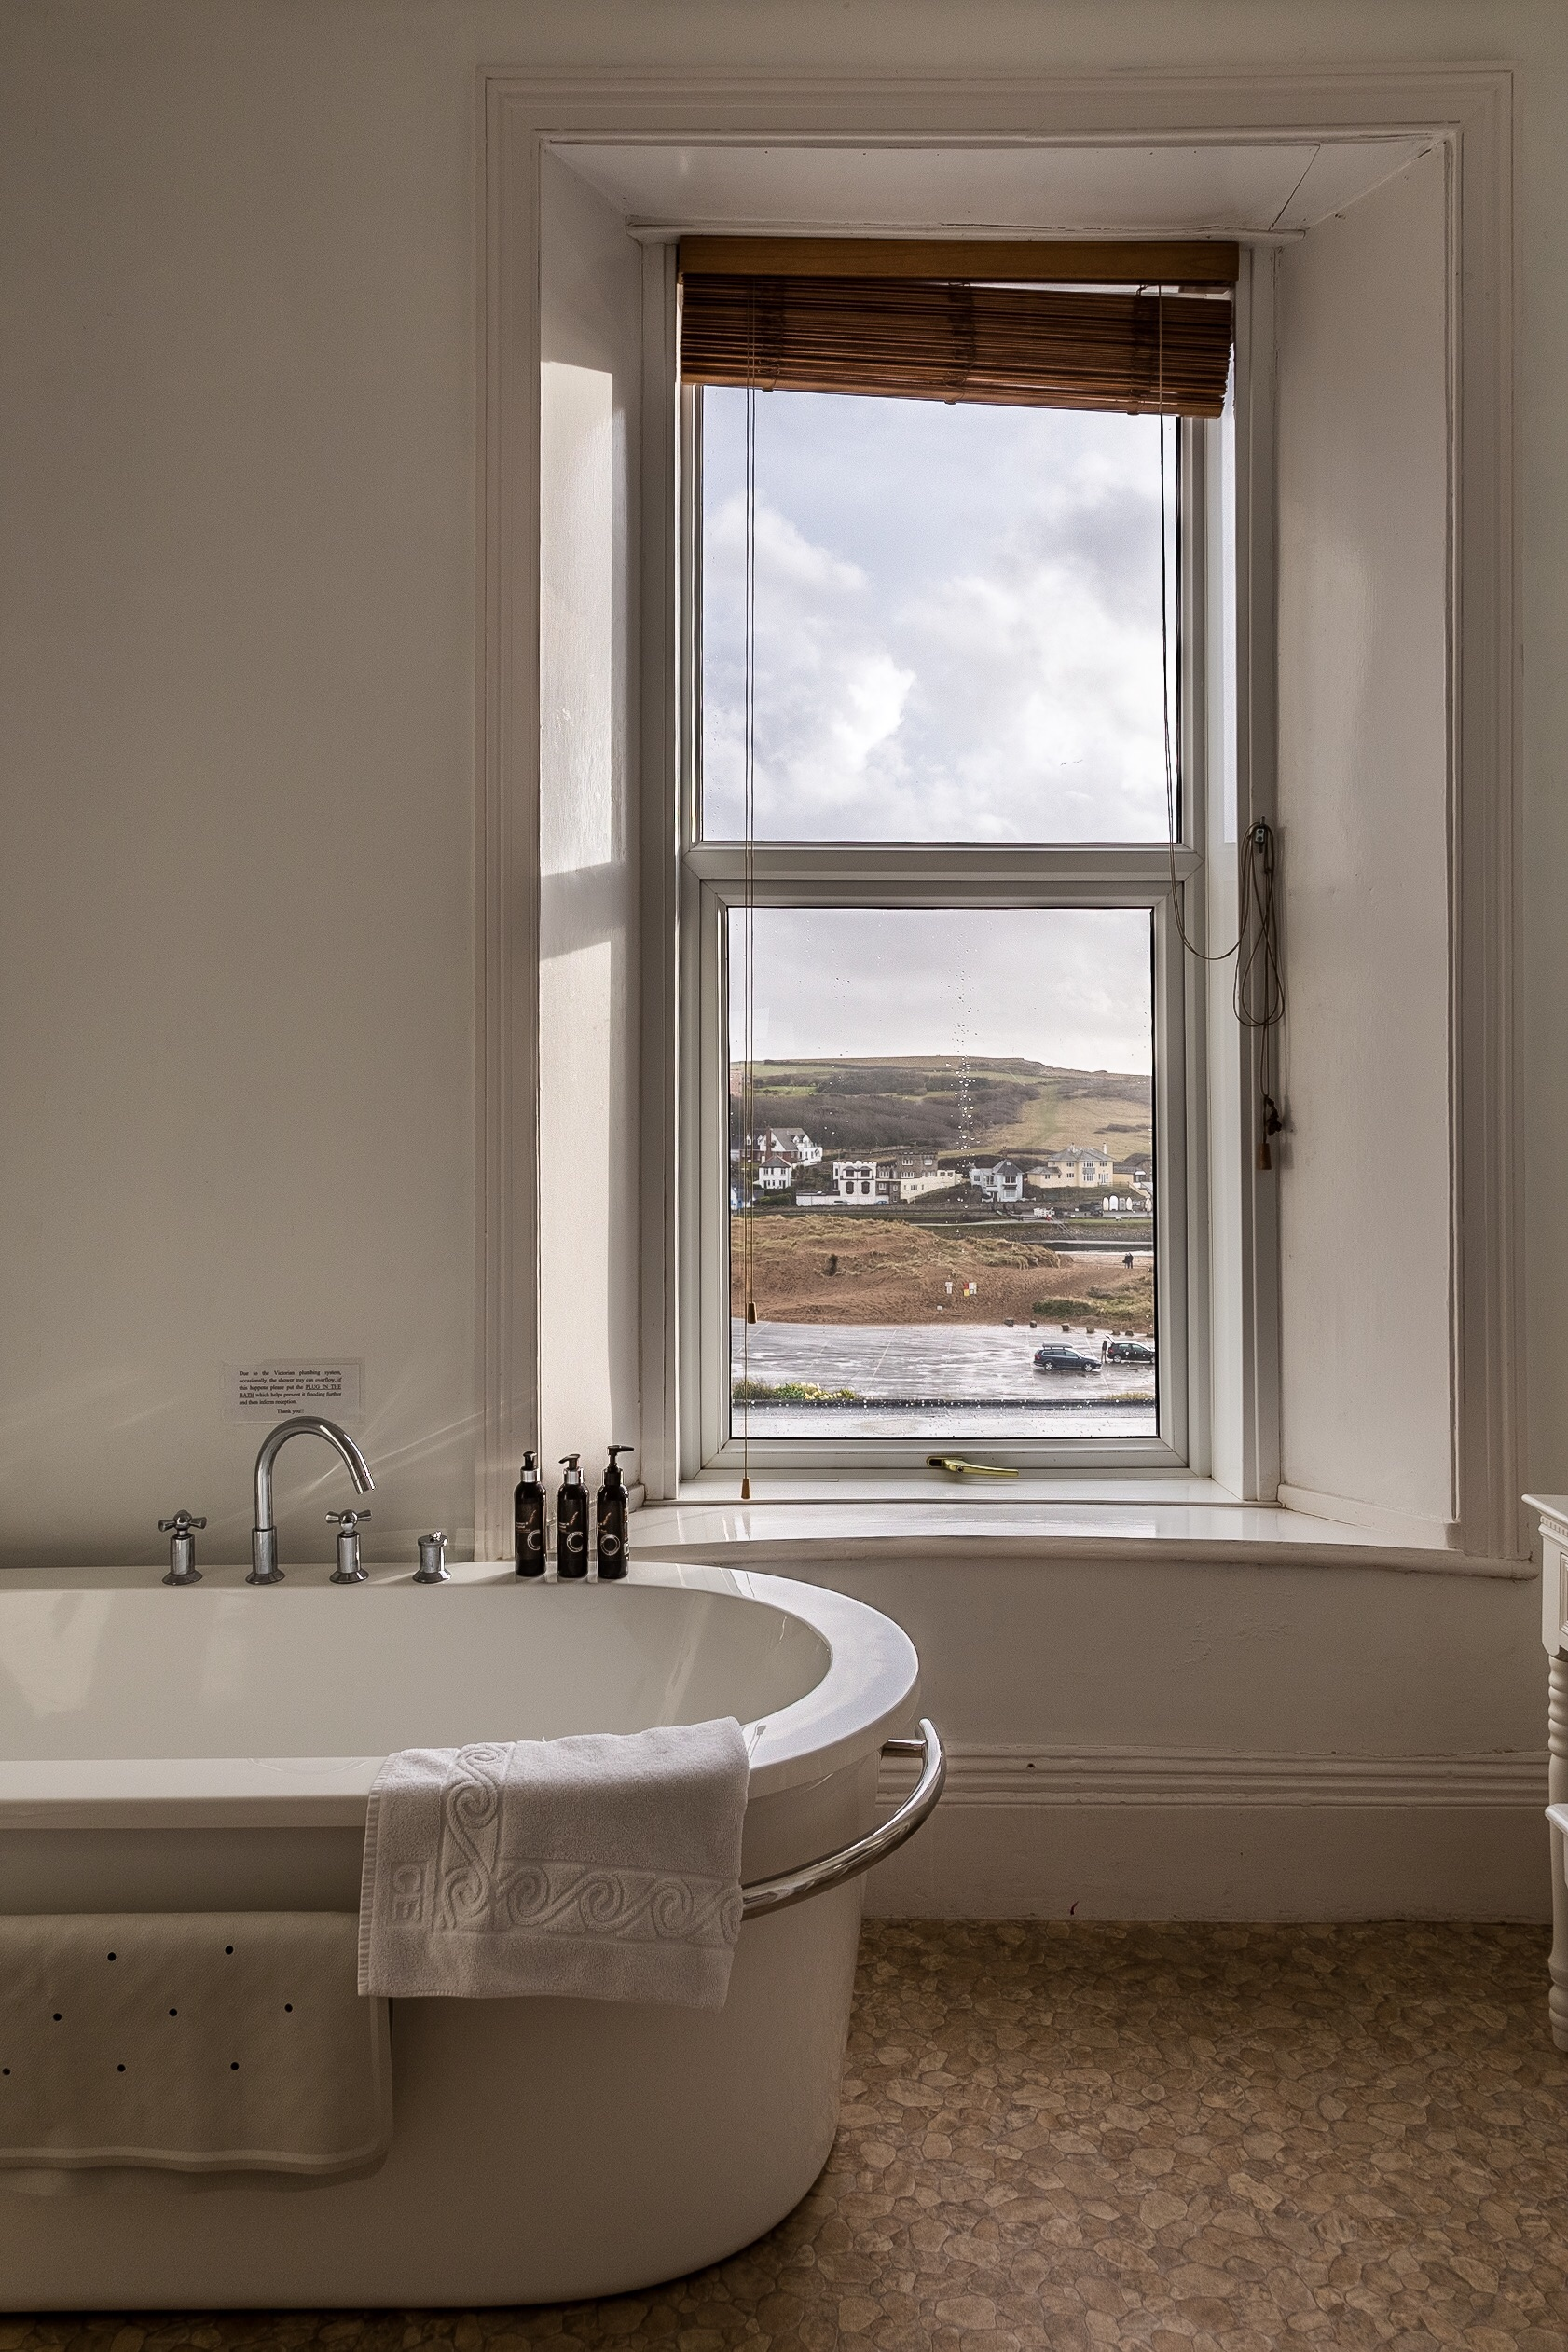 Bathroom, Edgcumbe Hotel, Bude, by Rick McEvoy interior photographer in Cornwall